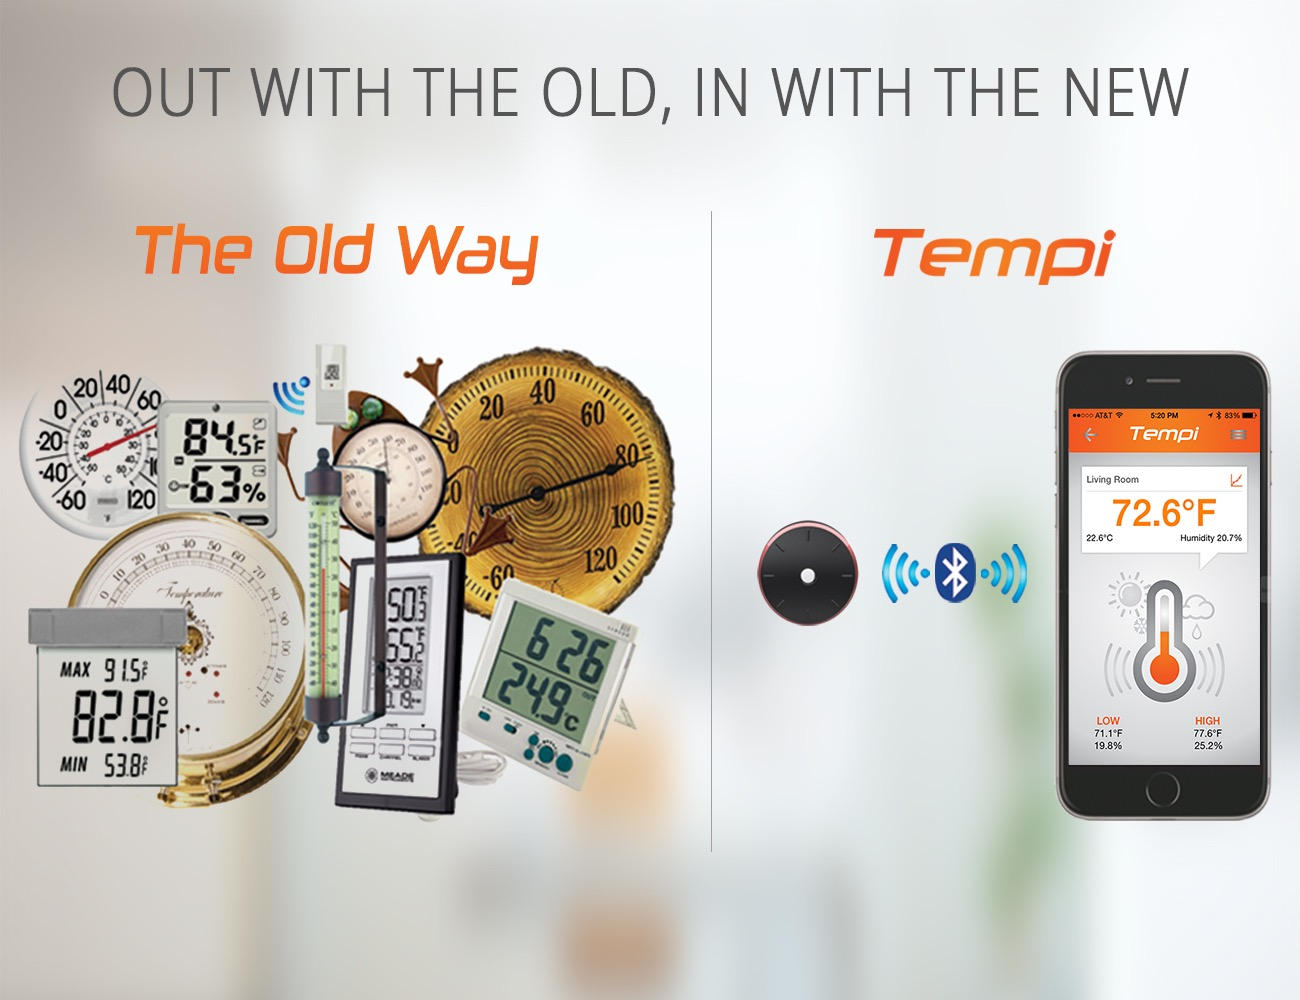 Tempi Monitor Temperature And Humidity With Your